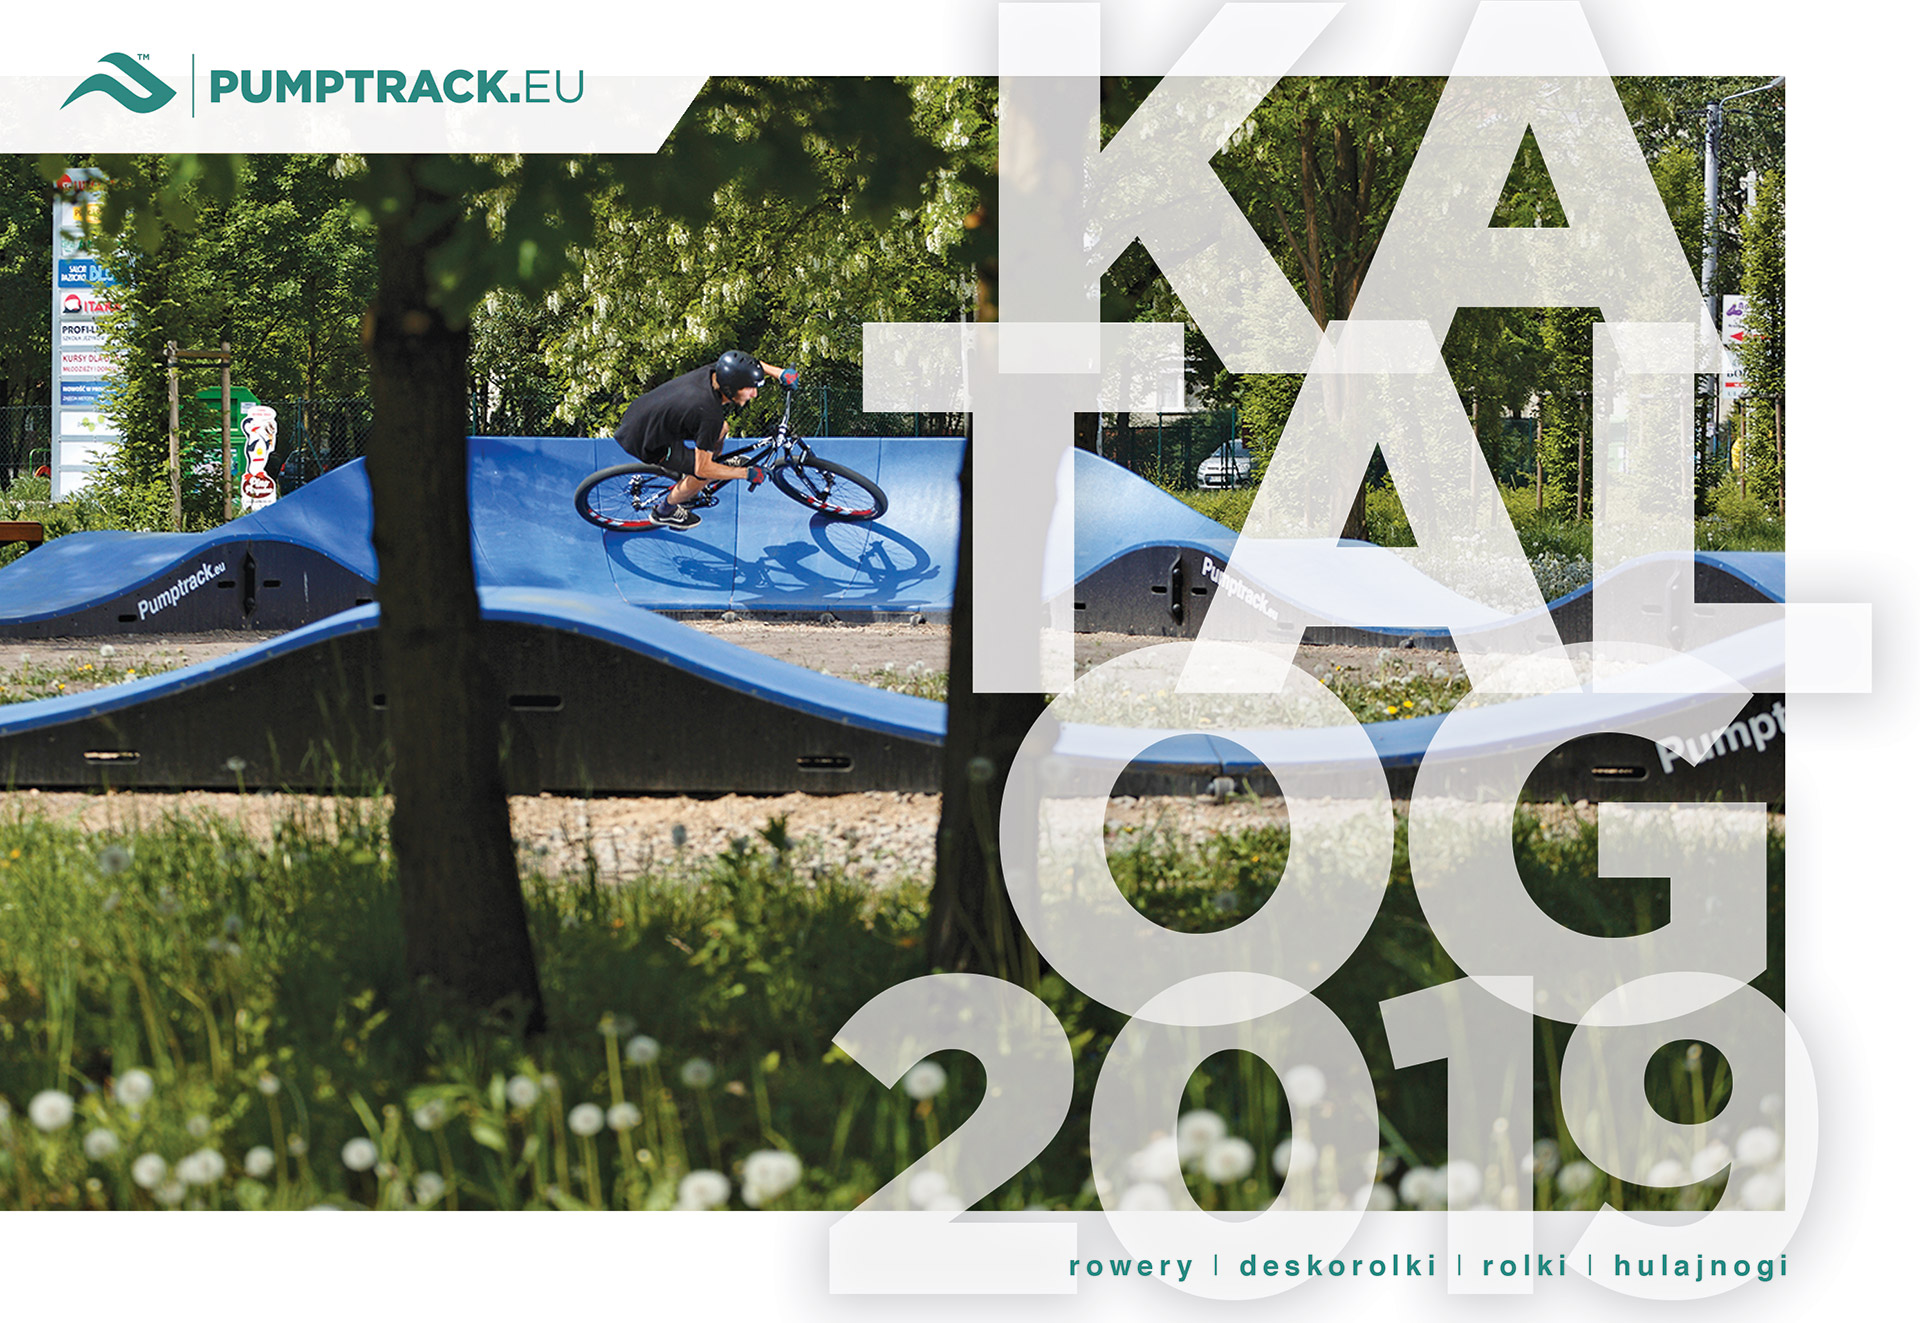 Katalog pumptracki - Pumptrack.eu